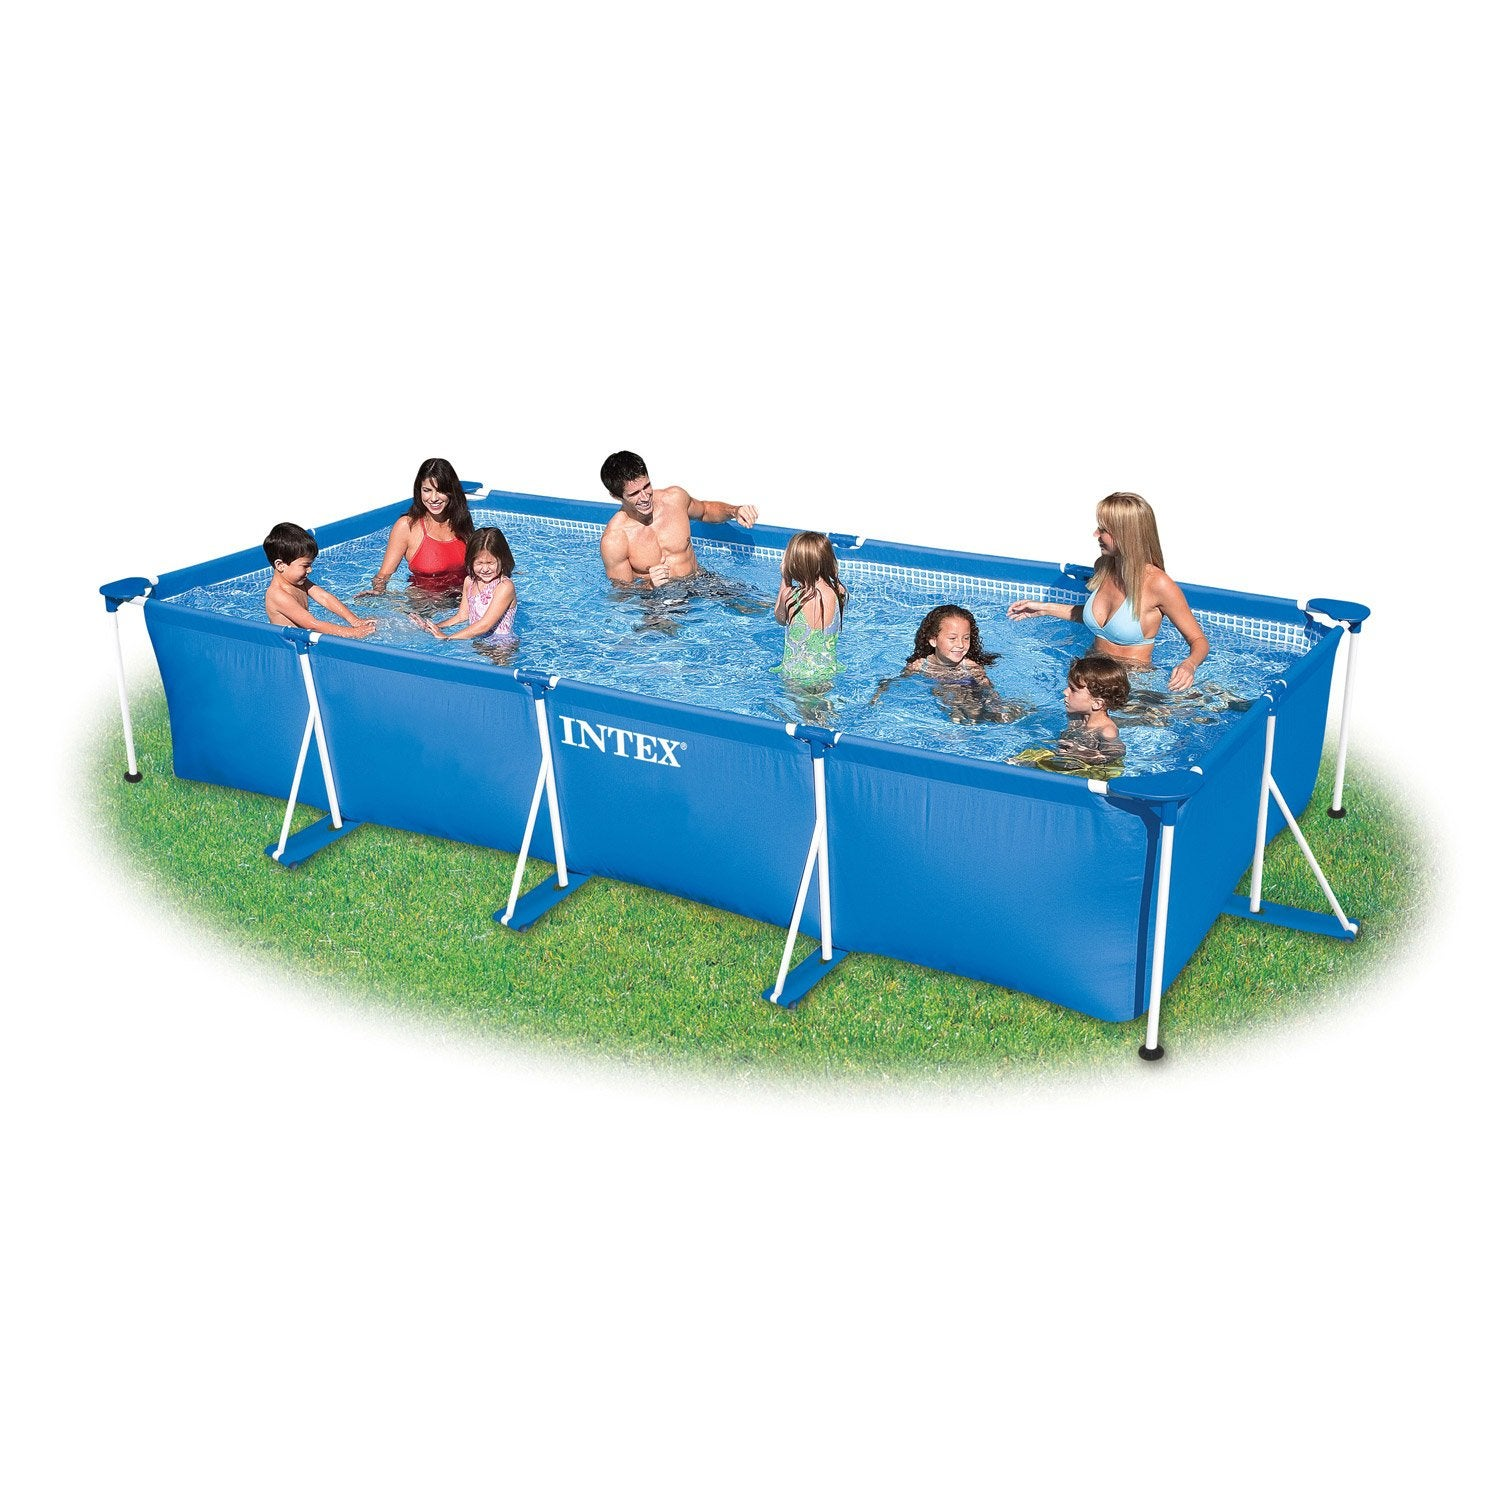 Piscine hors sol autoportante tubulaire intex l x l for Piscine hors sol intex 5 49